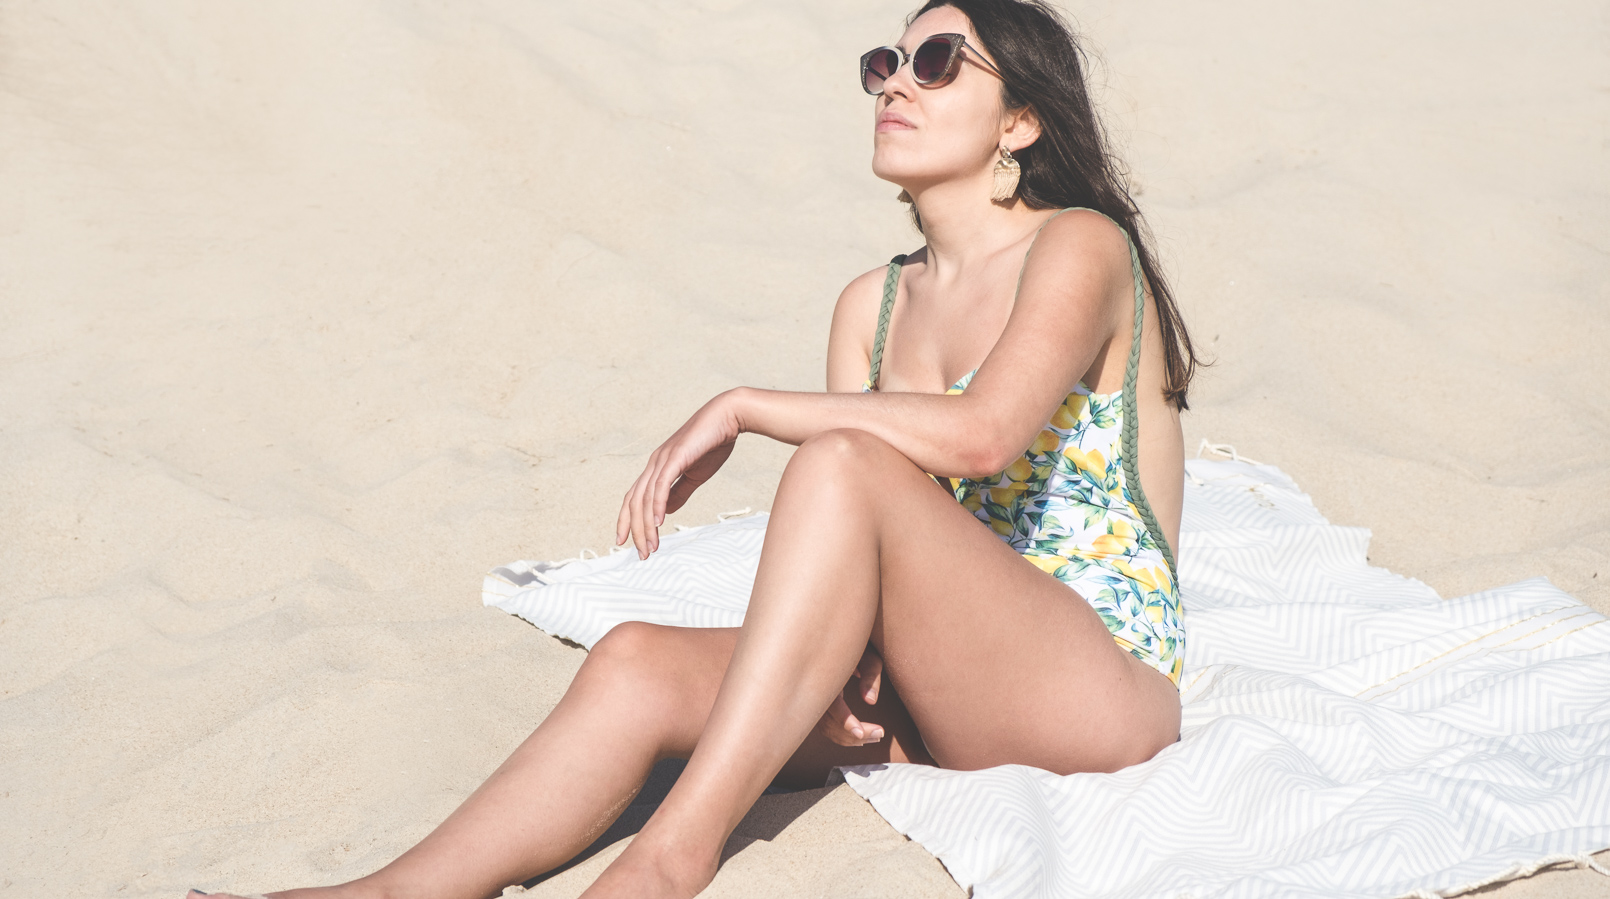 Le Fashionaire When life gives you lemons buy this swimsuit lemons white yellow green lemons cante swimsuit cat eye grey white sunglasses parfois gold hm tassels earrings beach futah beach towel white blue sand 1398F EN